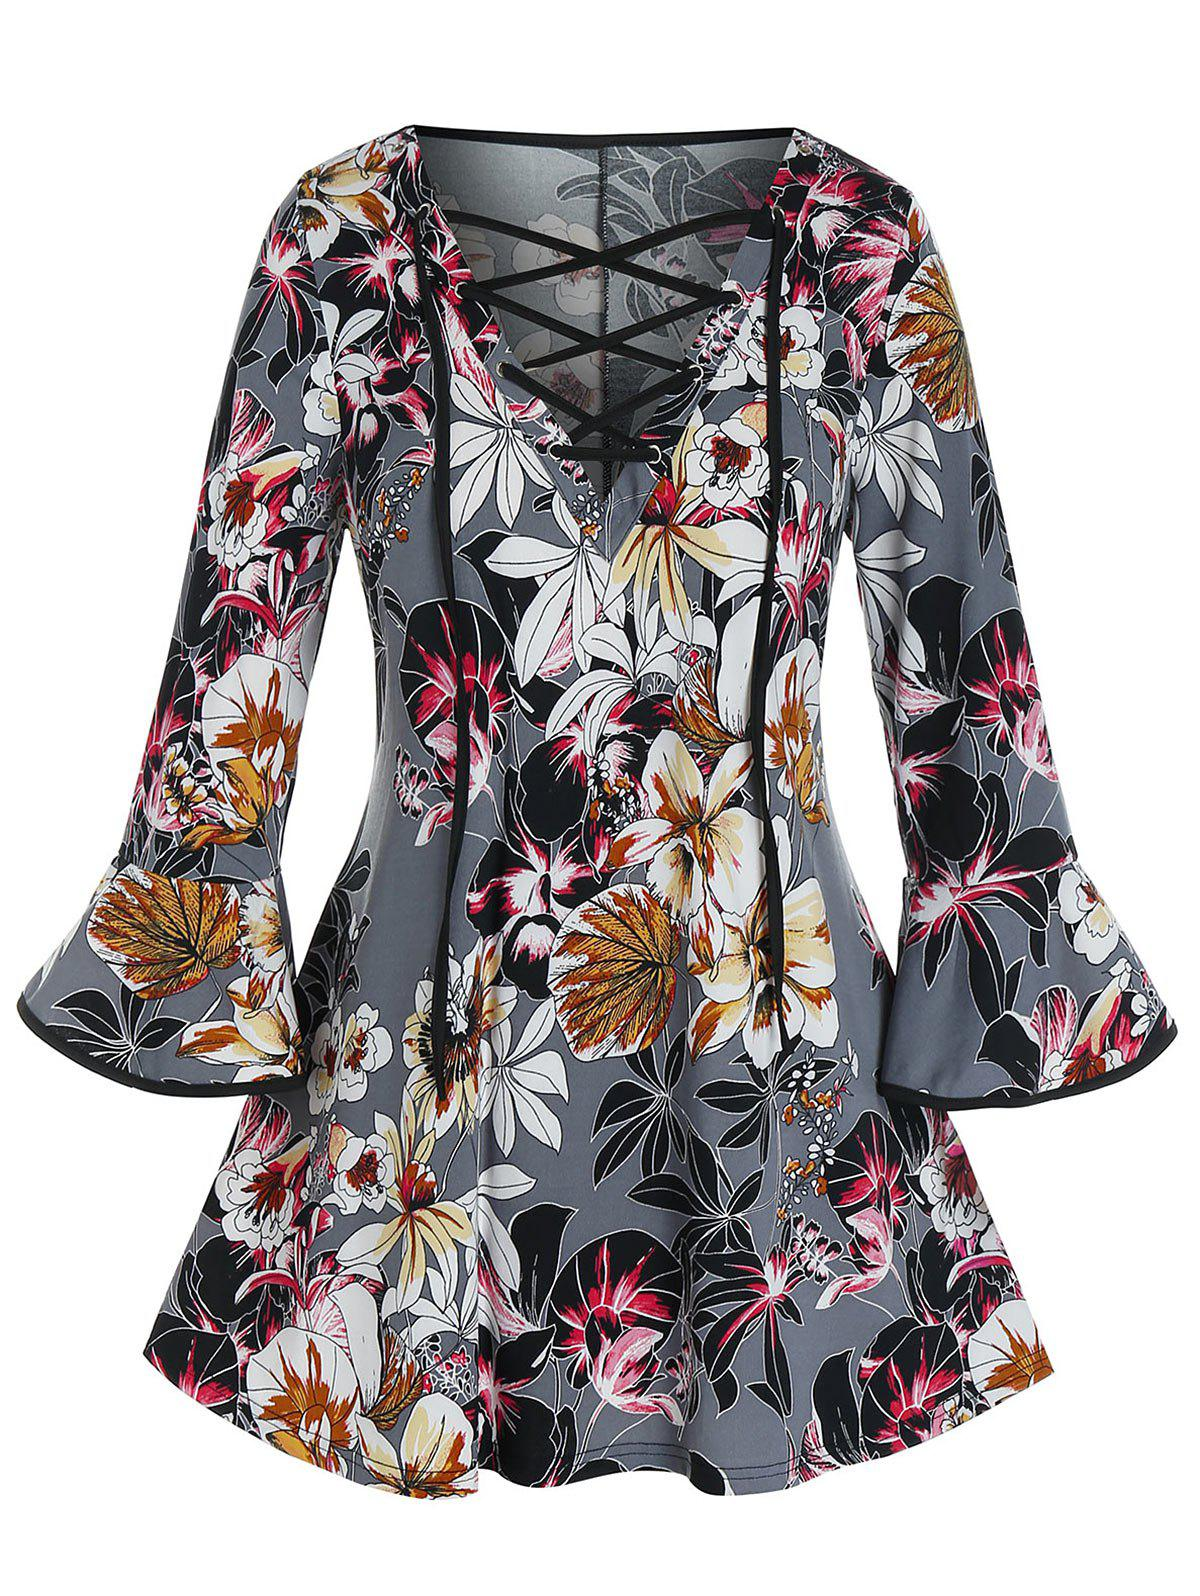 Plus Size Flower Lace-up Bell Sleeve Top - BATTLESHIP GRAY 3X